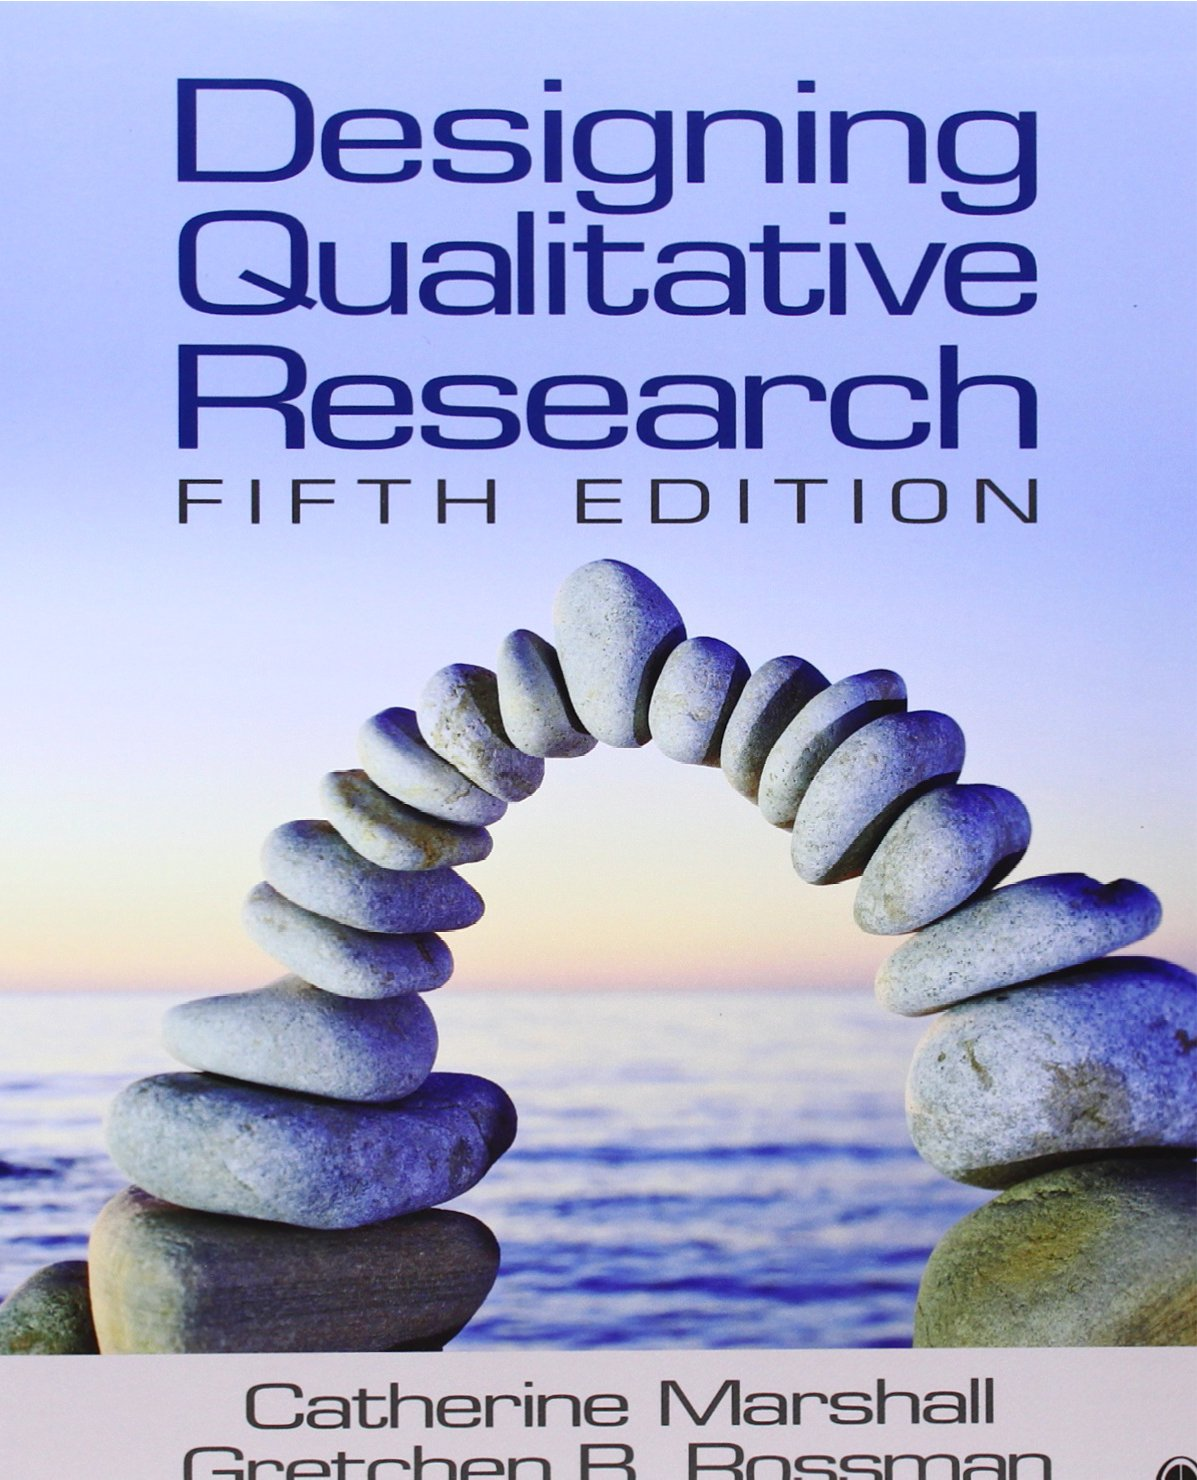 Qualitative poster design - Designing Qualitative Research Amazon Co Uk Catherine Marshall Gretchen B Rossman 9781412970440 Books